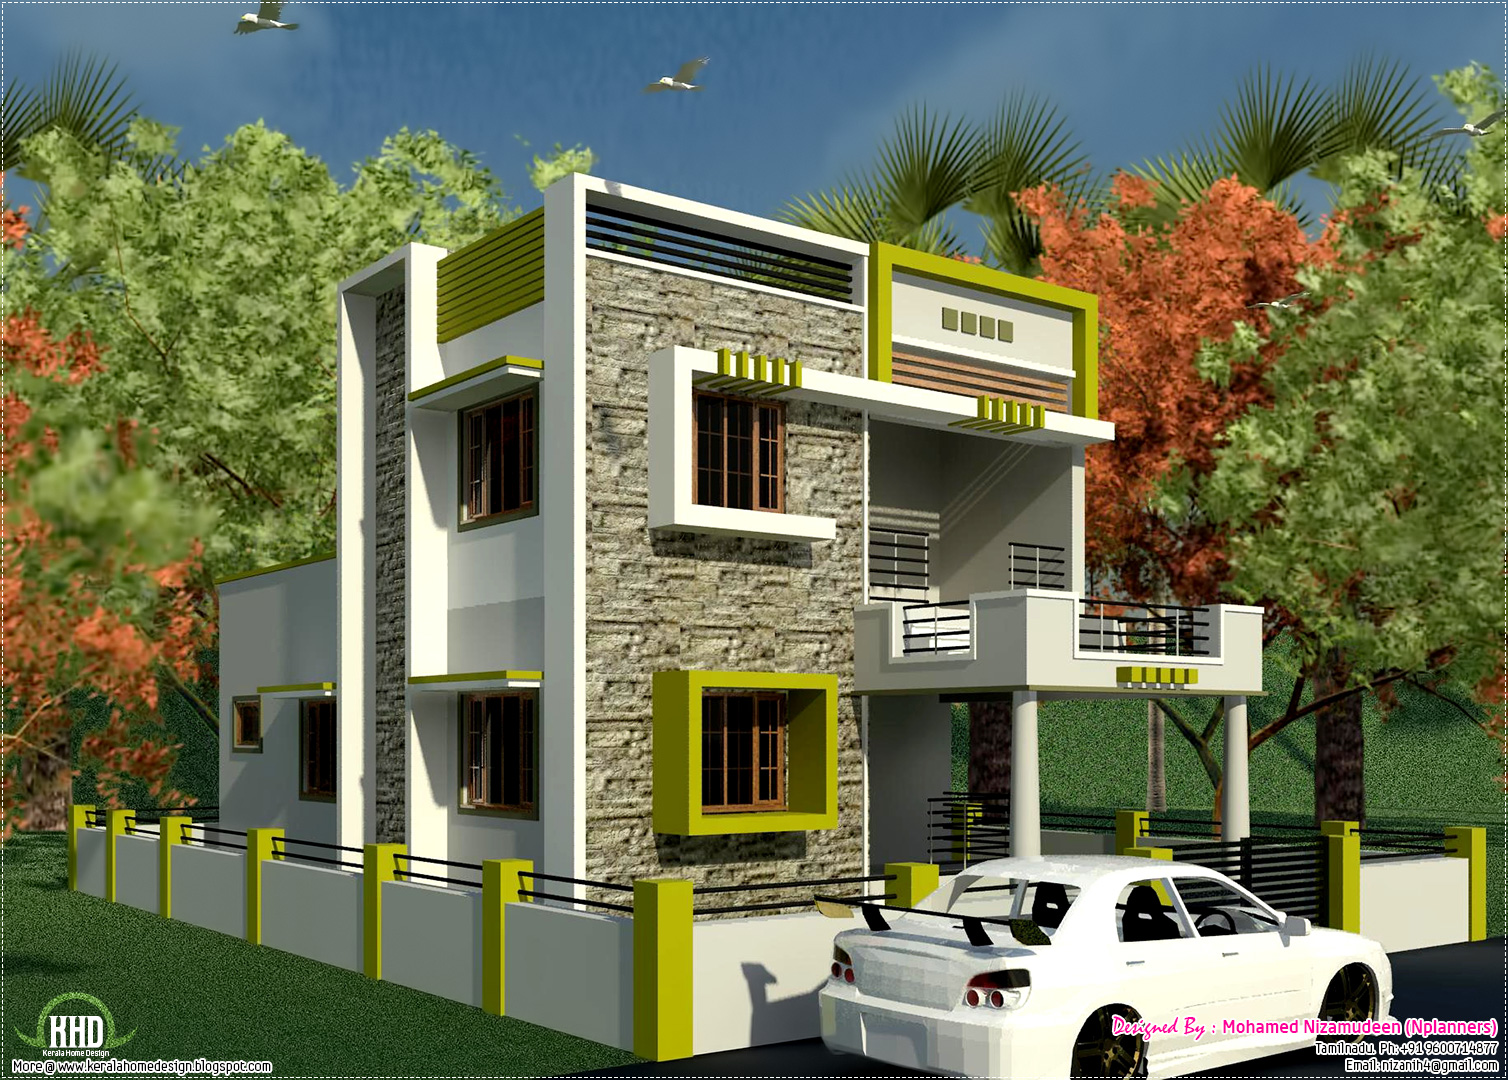 South indian style new modern 1460 sq feet house design for Good home designs in india